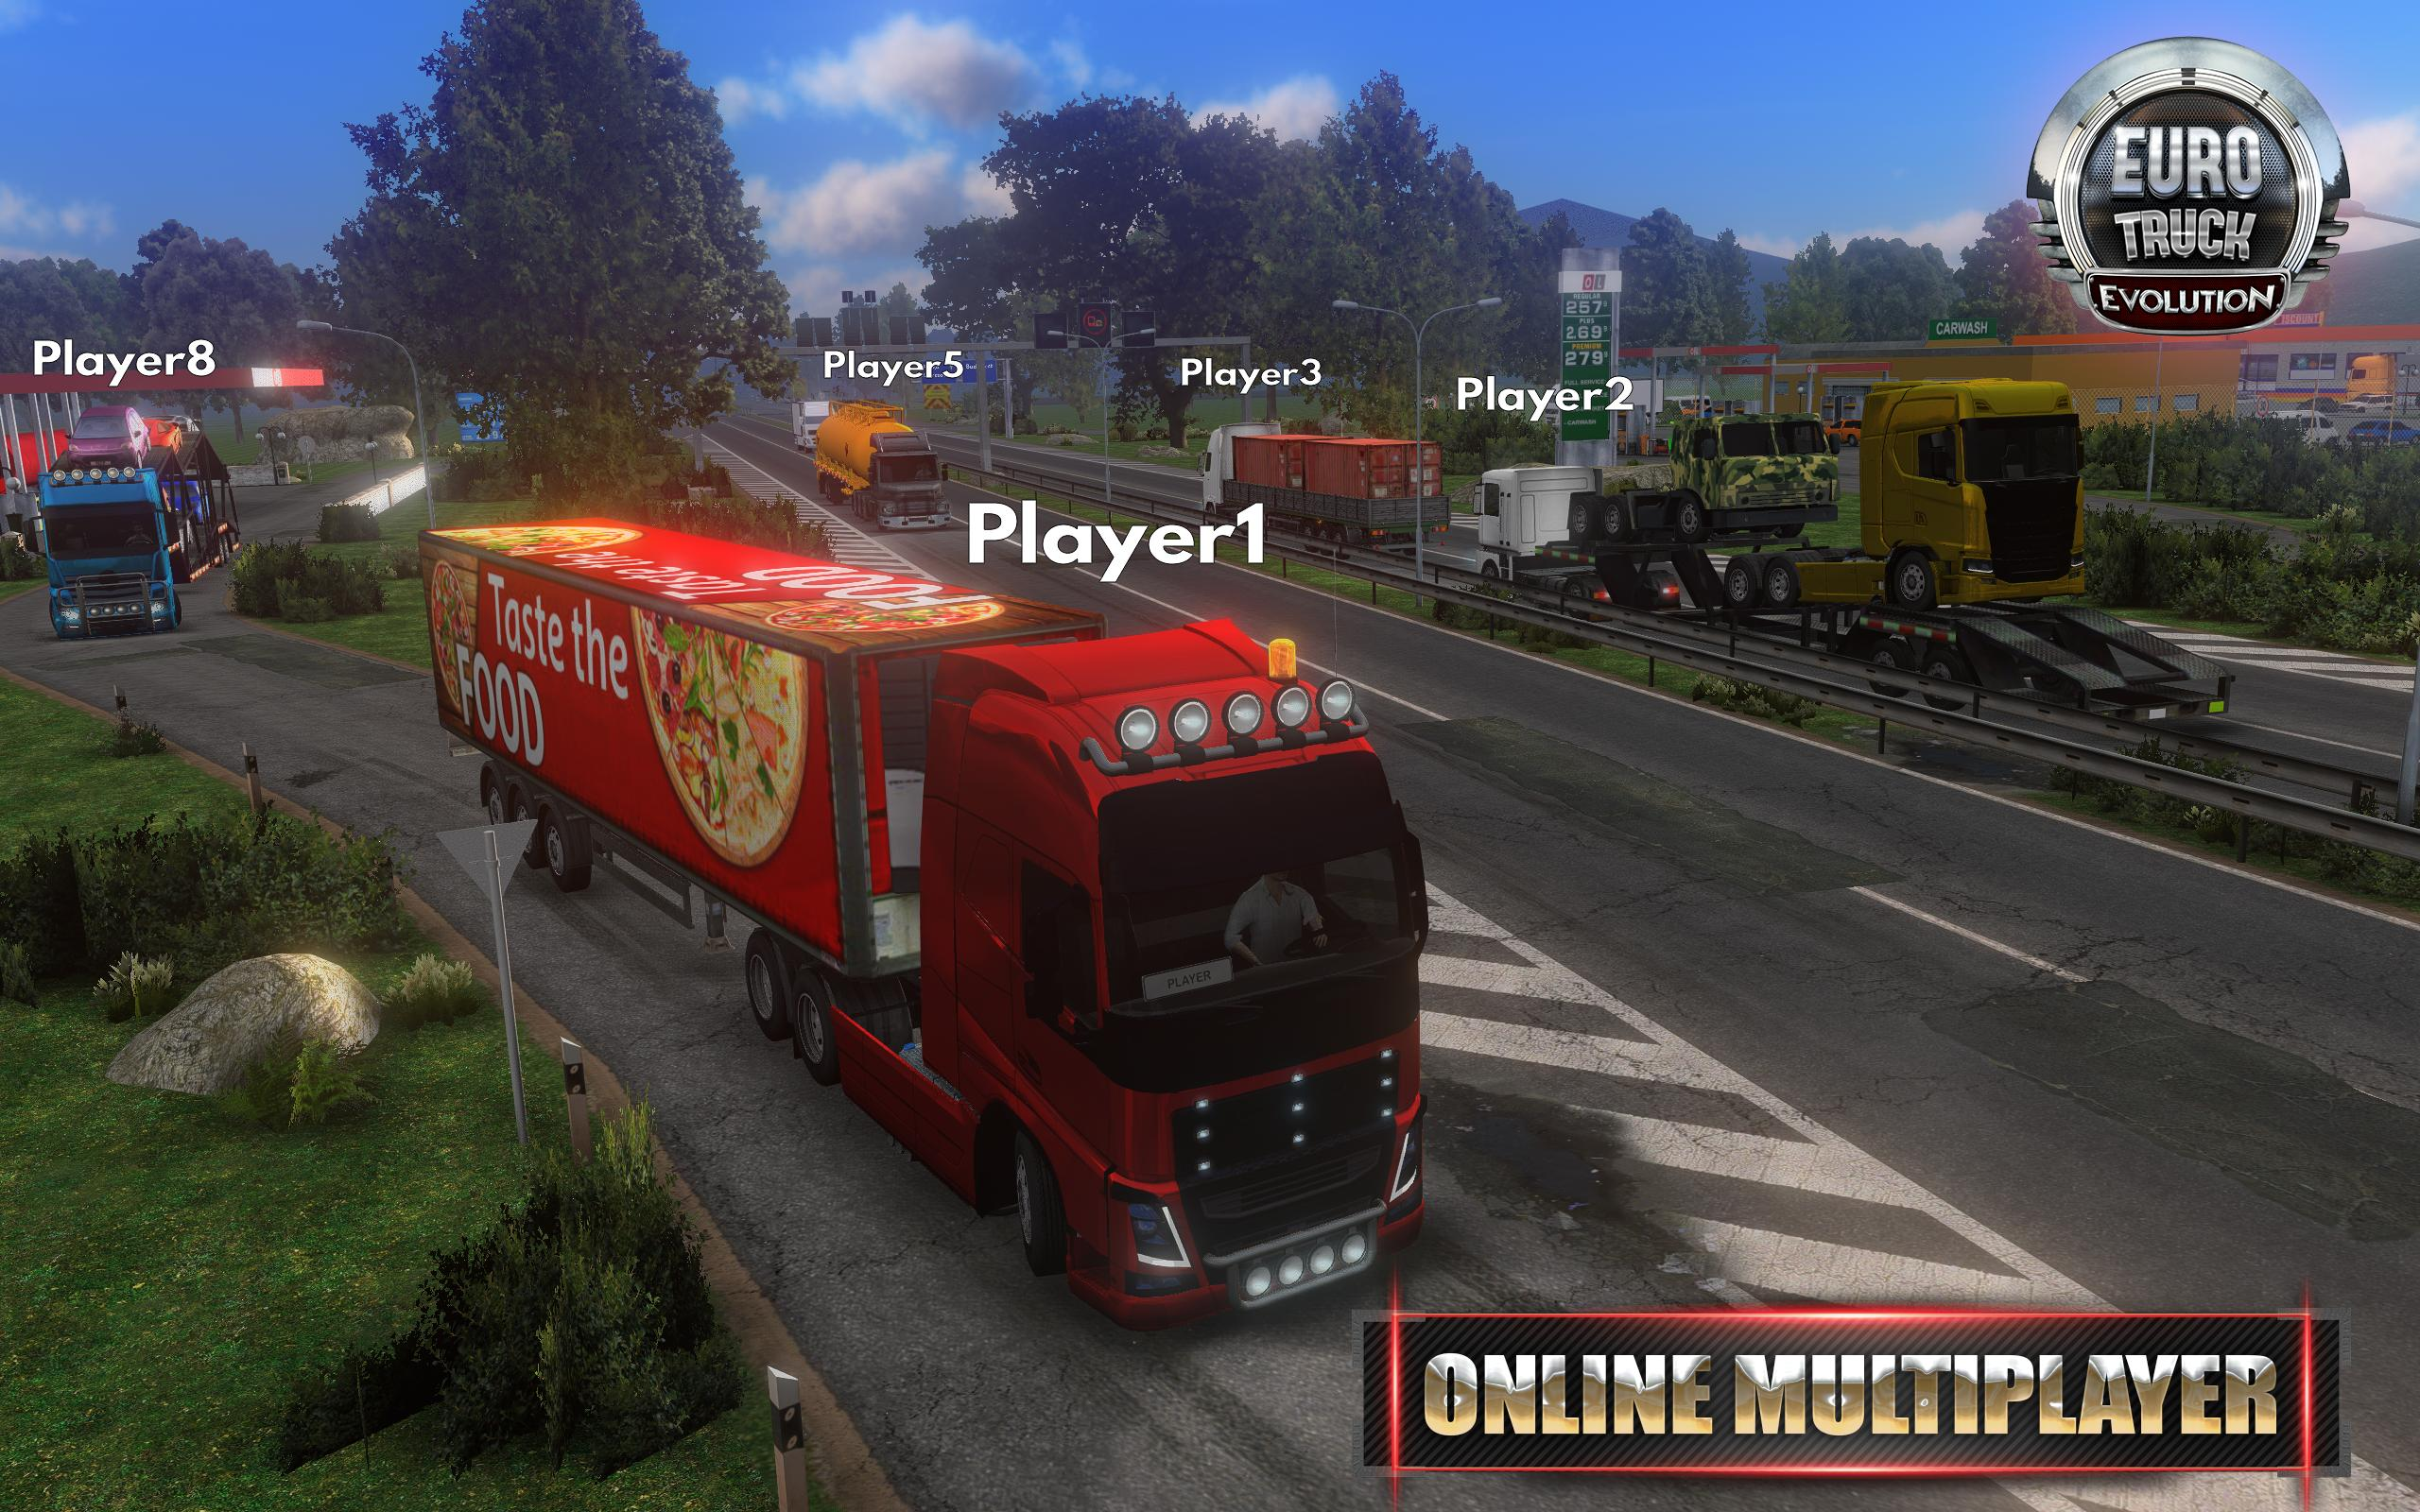 Euro Truck Evolution (Simulator) 3.1 Screenshot 3